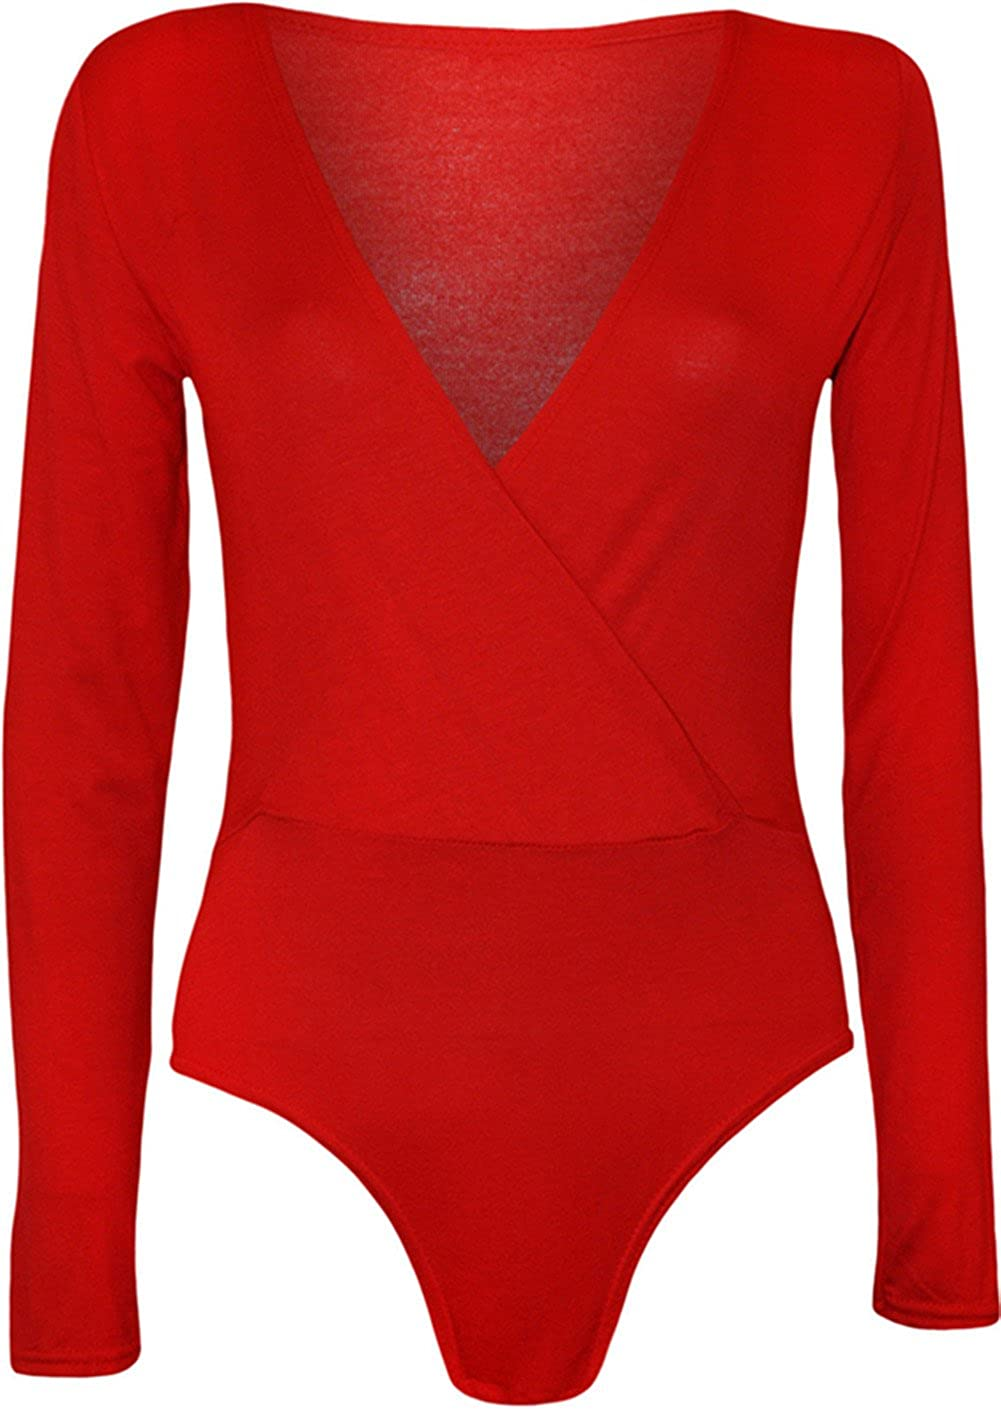 Commencer Women's Cross Over Wrap V Neck Long Sleeve Bodysuit Shirt Leotard Top